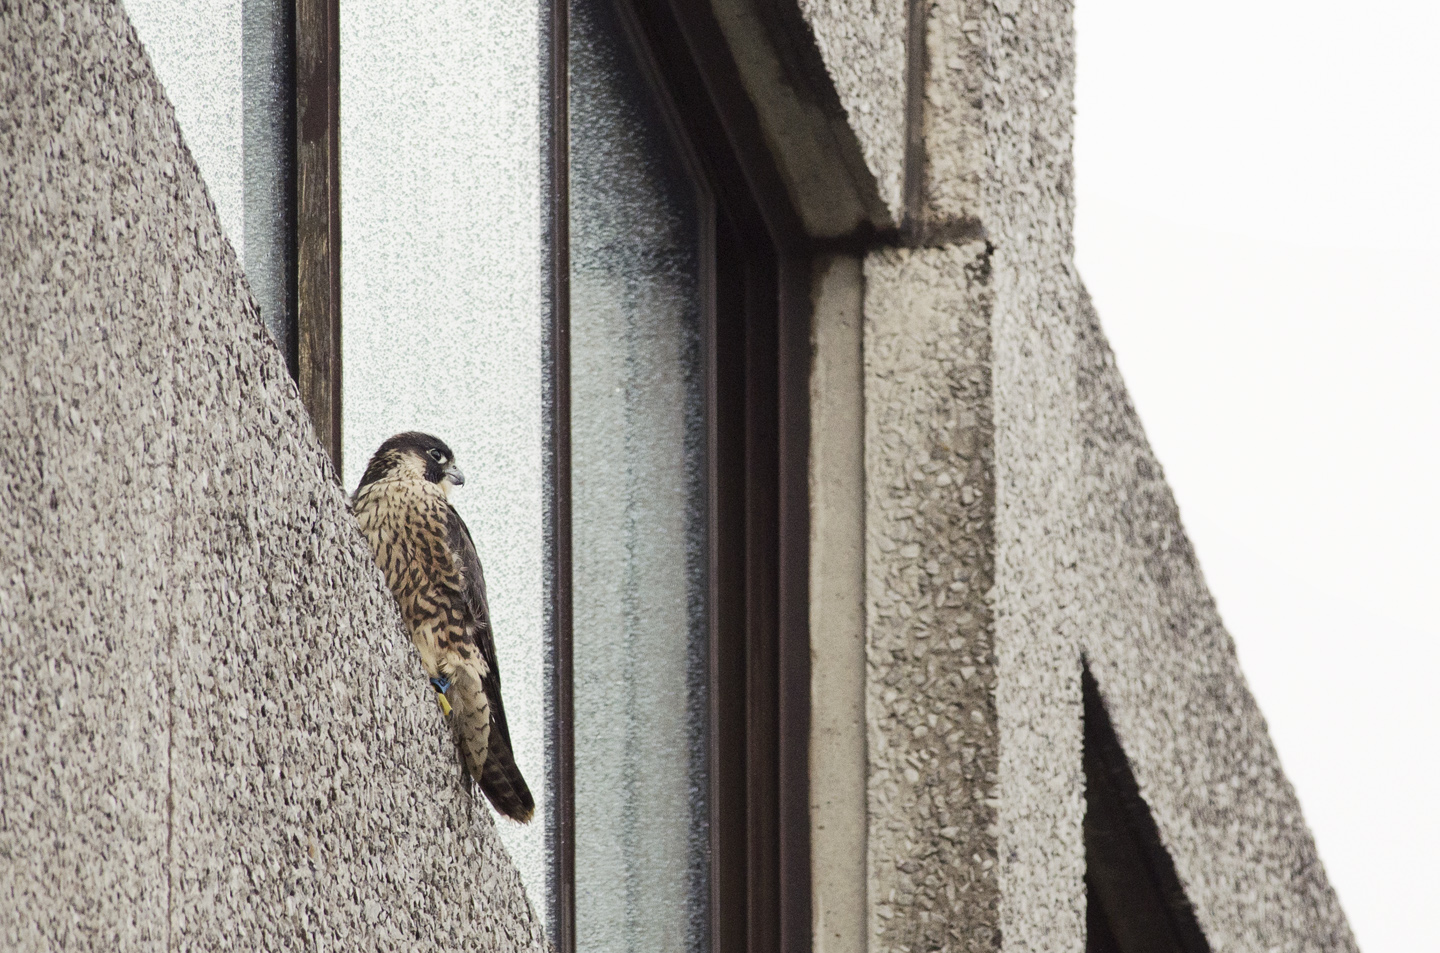 Juvenile peregrines blend in to the urban environment as well as they do a coastal cliff - the habitat is surprisingly similar, with its tall rocky outcrops inhabited by gulls and pigeons